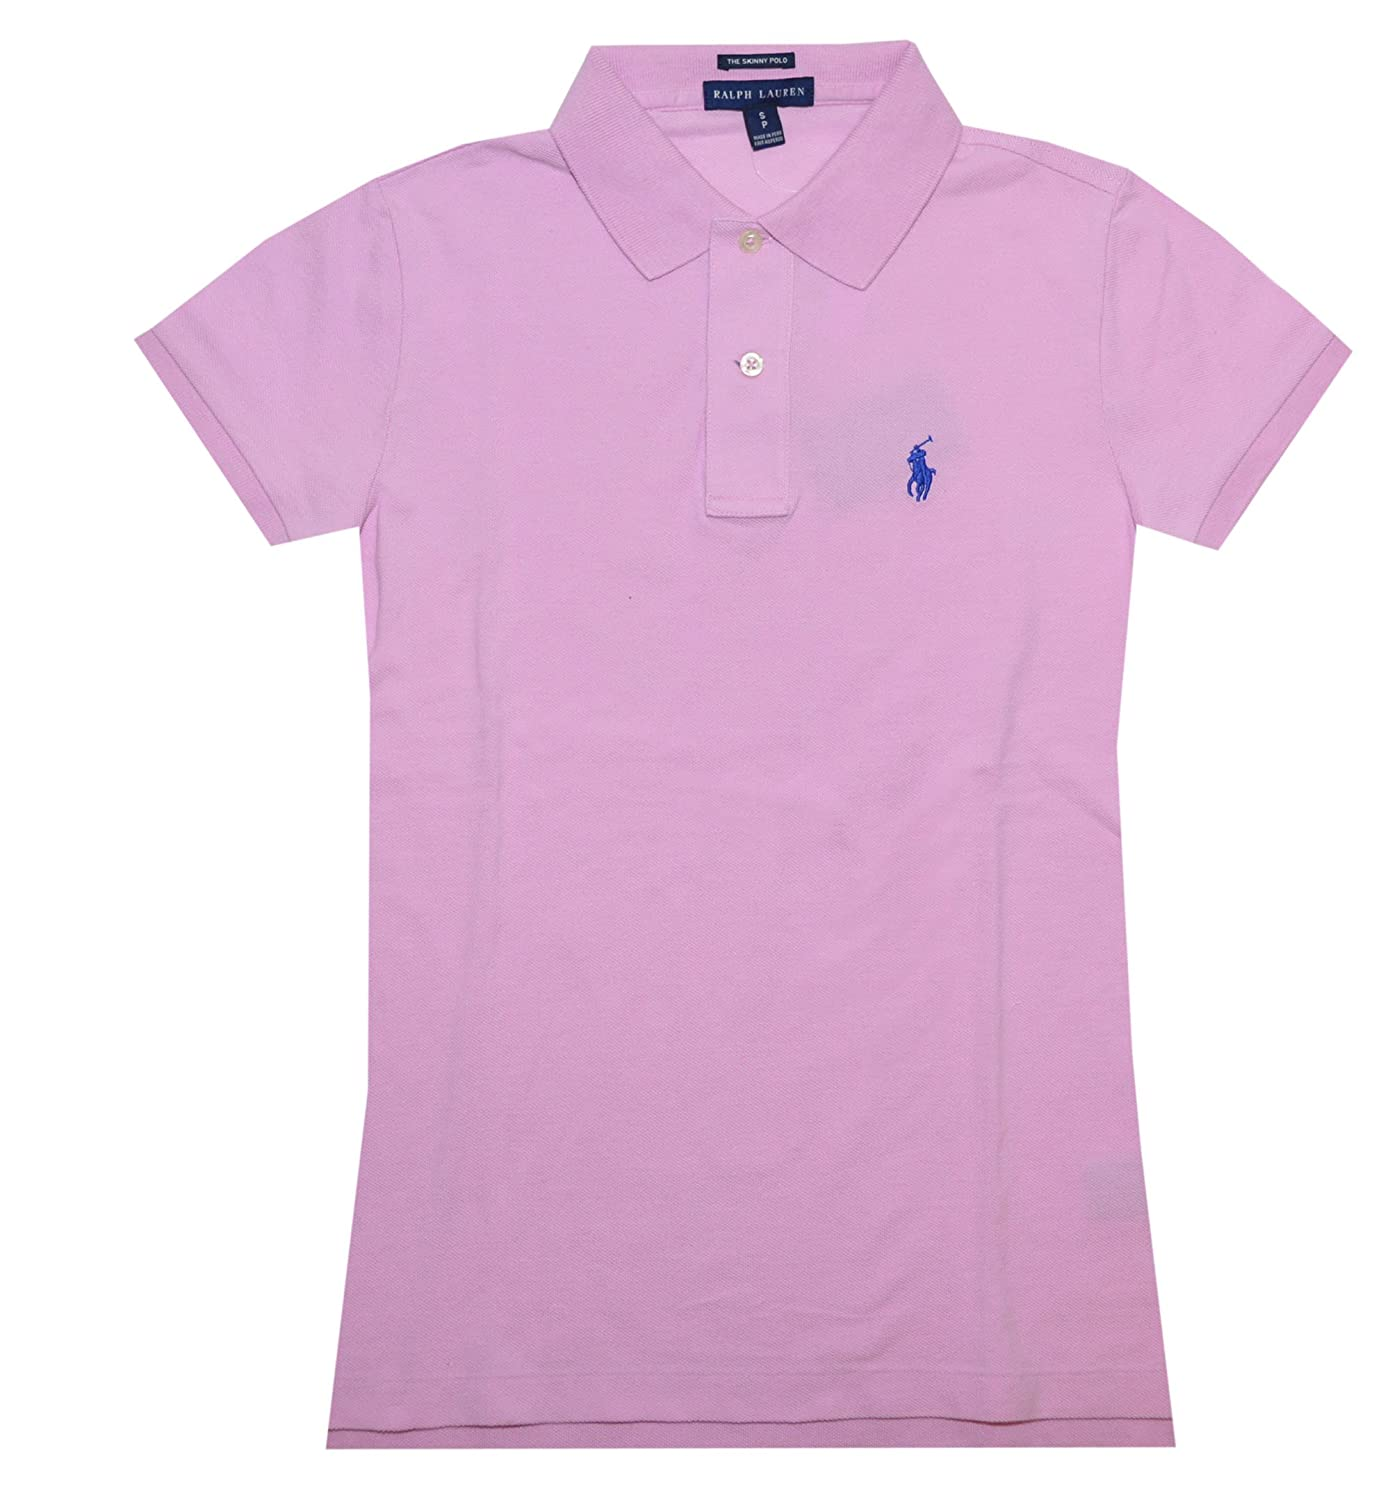 a706f6291 Top13: Ralph Lauren Skinny Fit Women Logo Polo T-shirt (Metro Pink/Blue  pony)